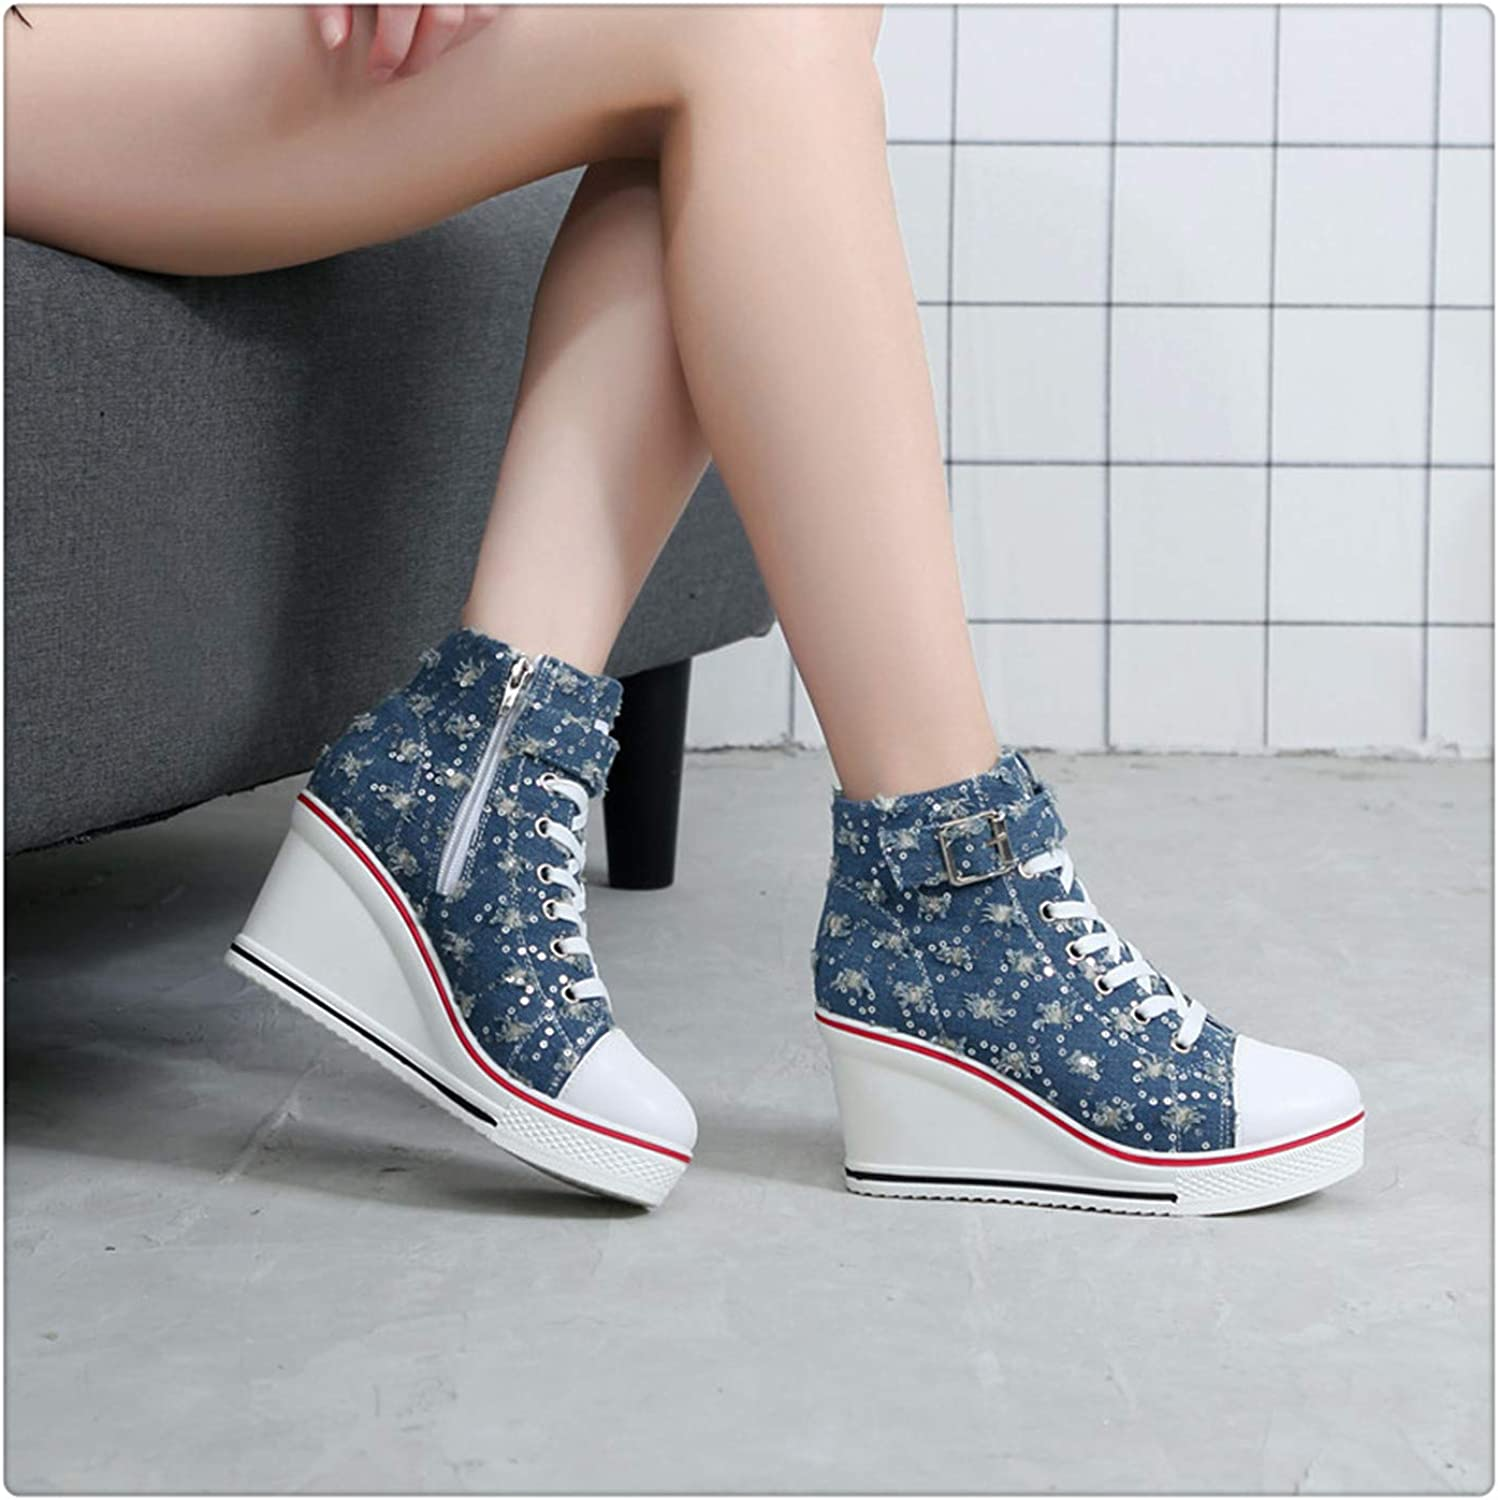 NNHLPO& Breathable High Top Platform shoes Women Canvas shoes Summer 2019 Casual Denim shoes Ladies Trainers High Heel for Walking bluee with Beads 8